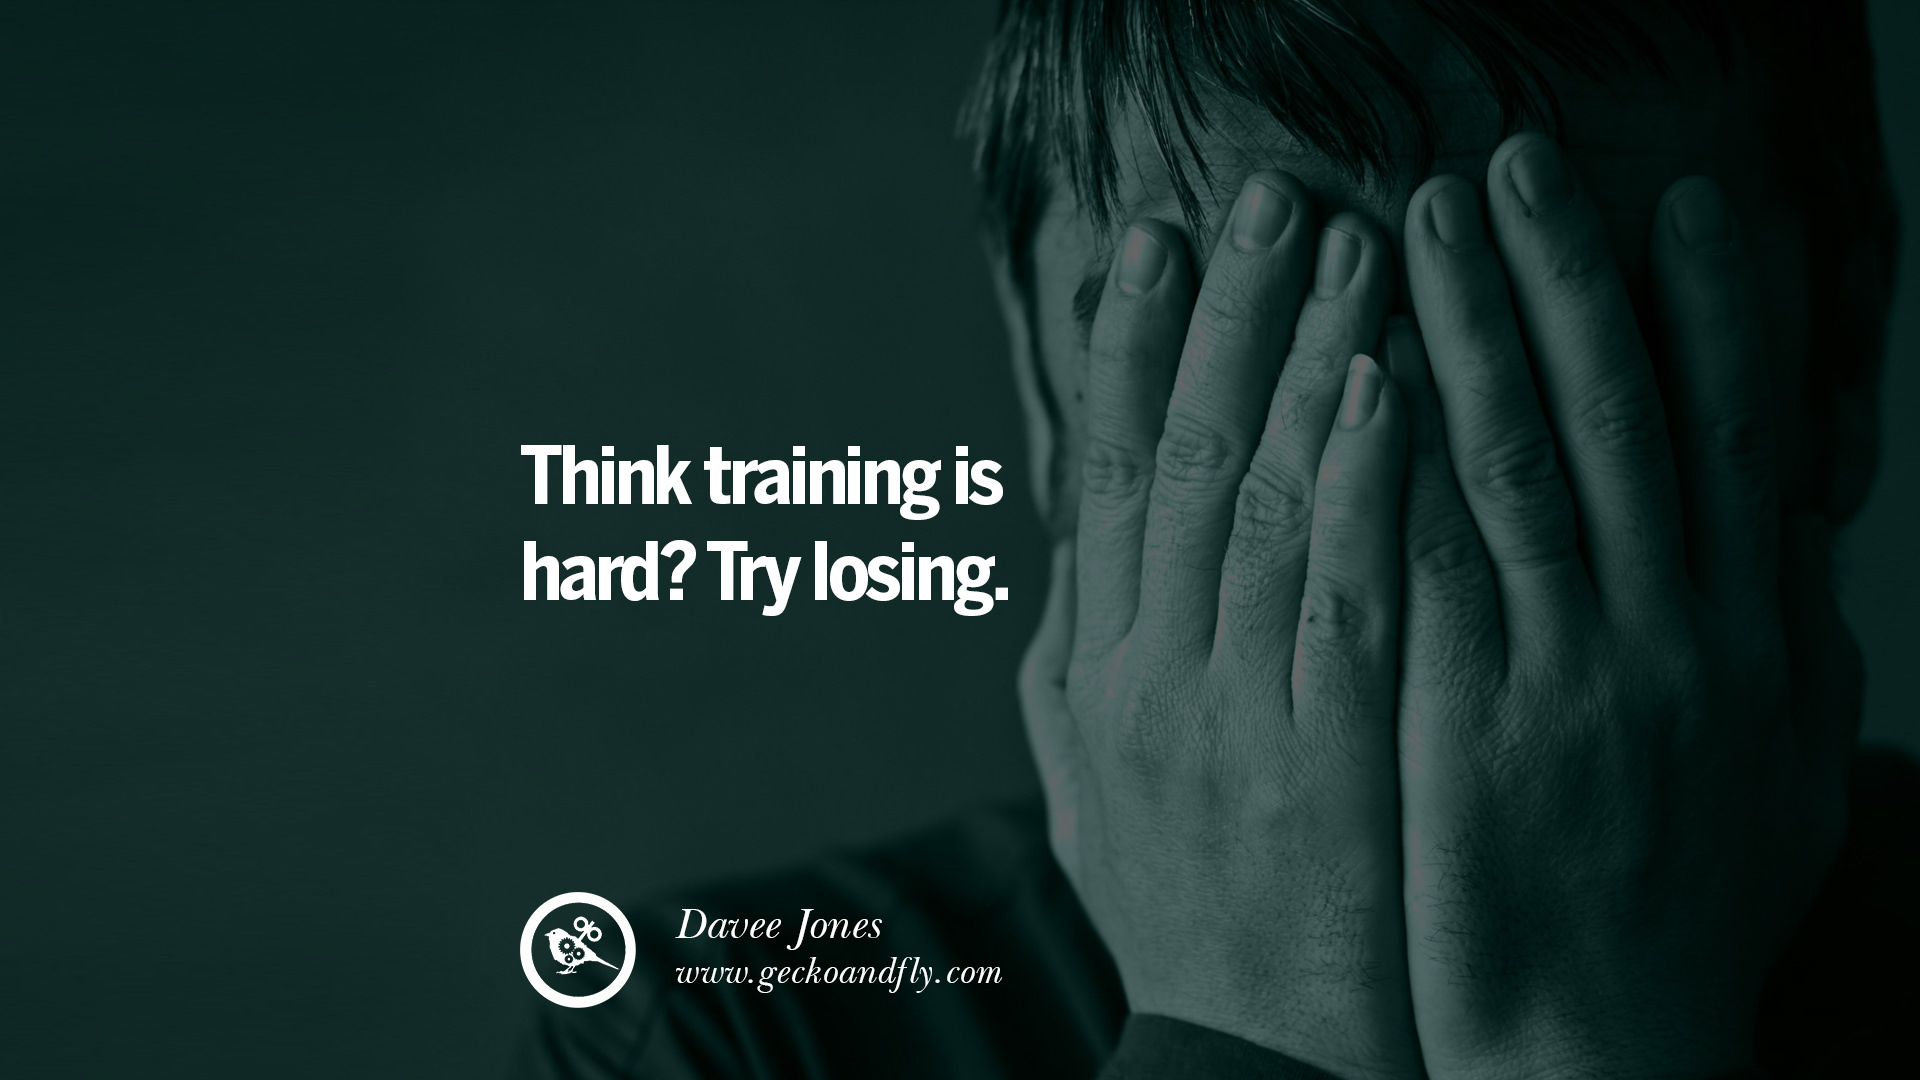 Motivational Sales Quotes 18 Inspirational Motivational Poster Quotes For Salespeople